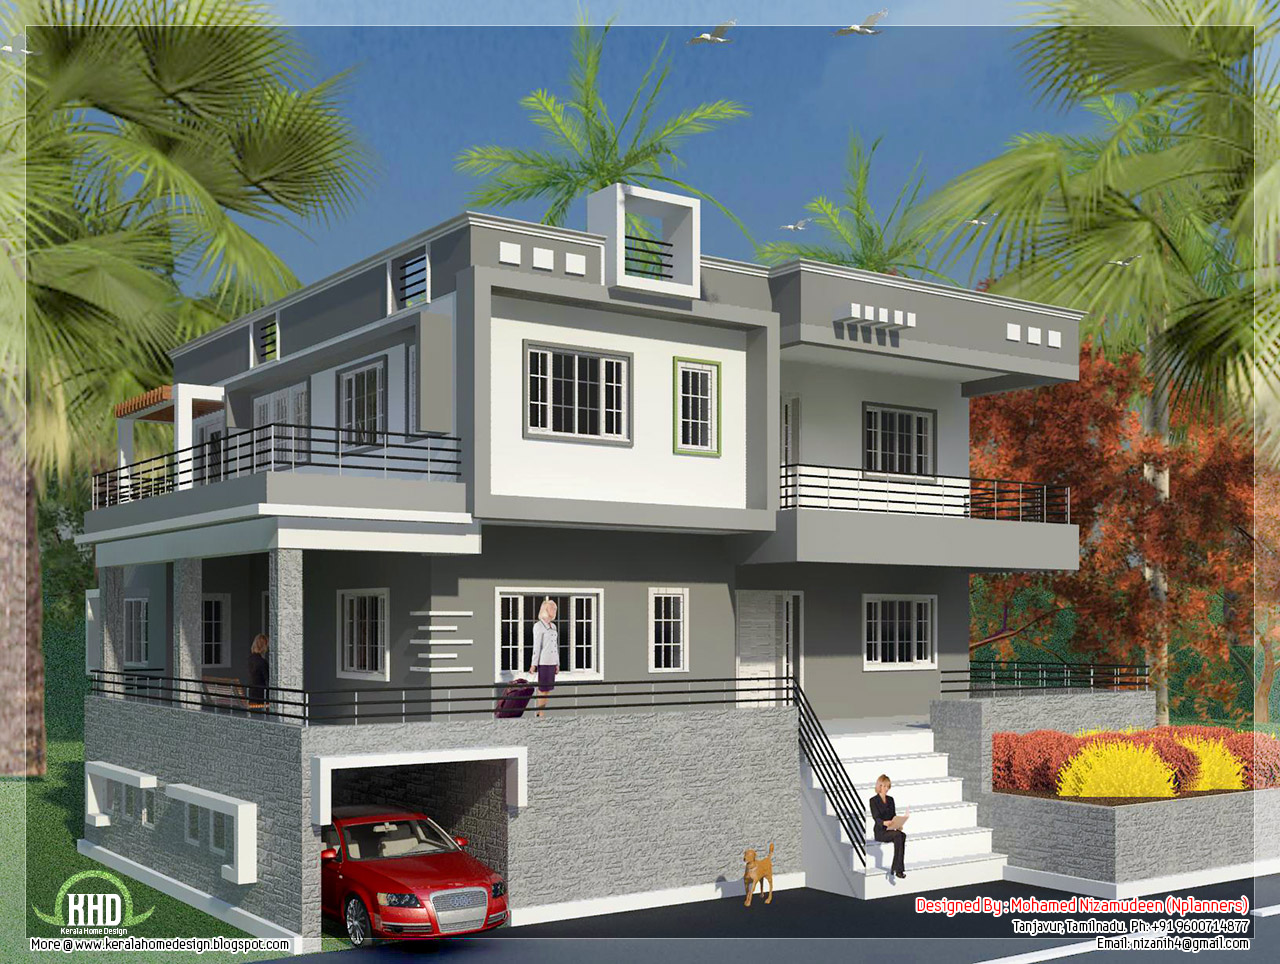 North indian style minimalist house exterior design for Home design exterior ideas in india